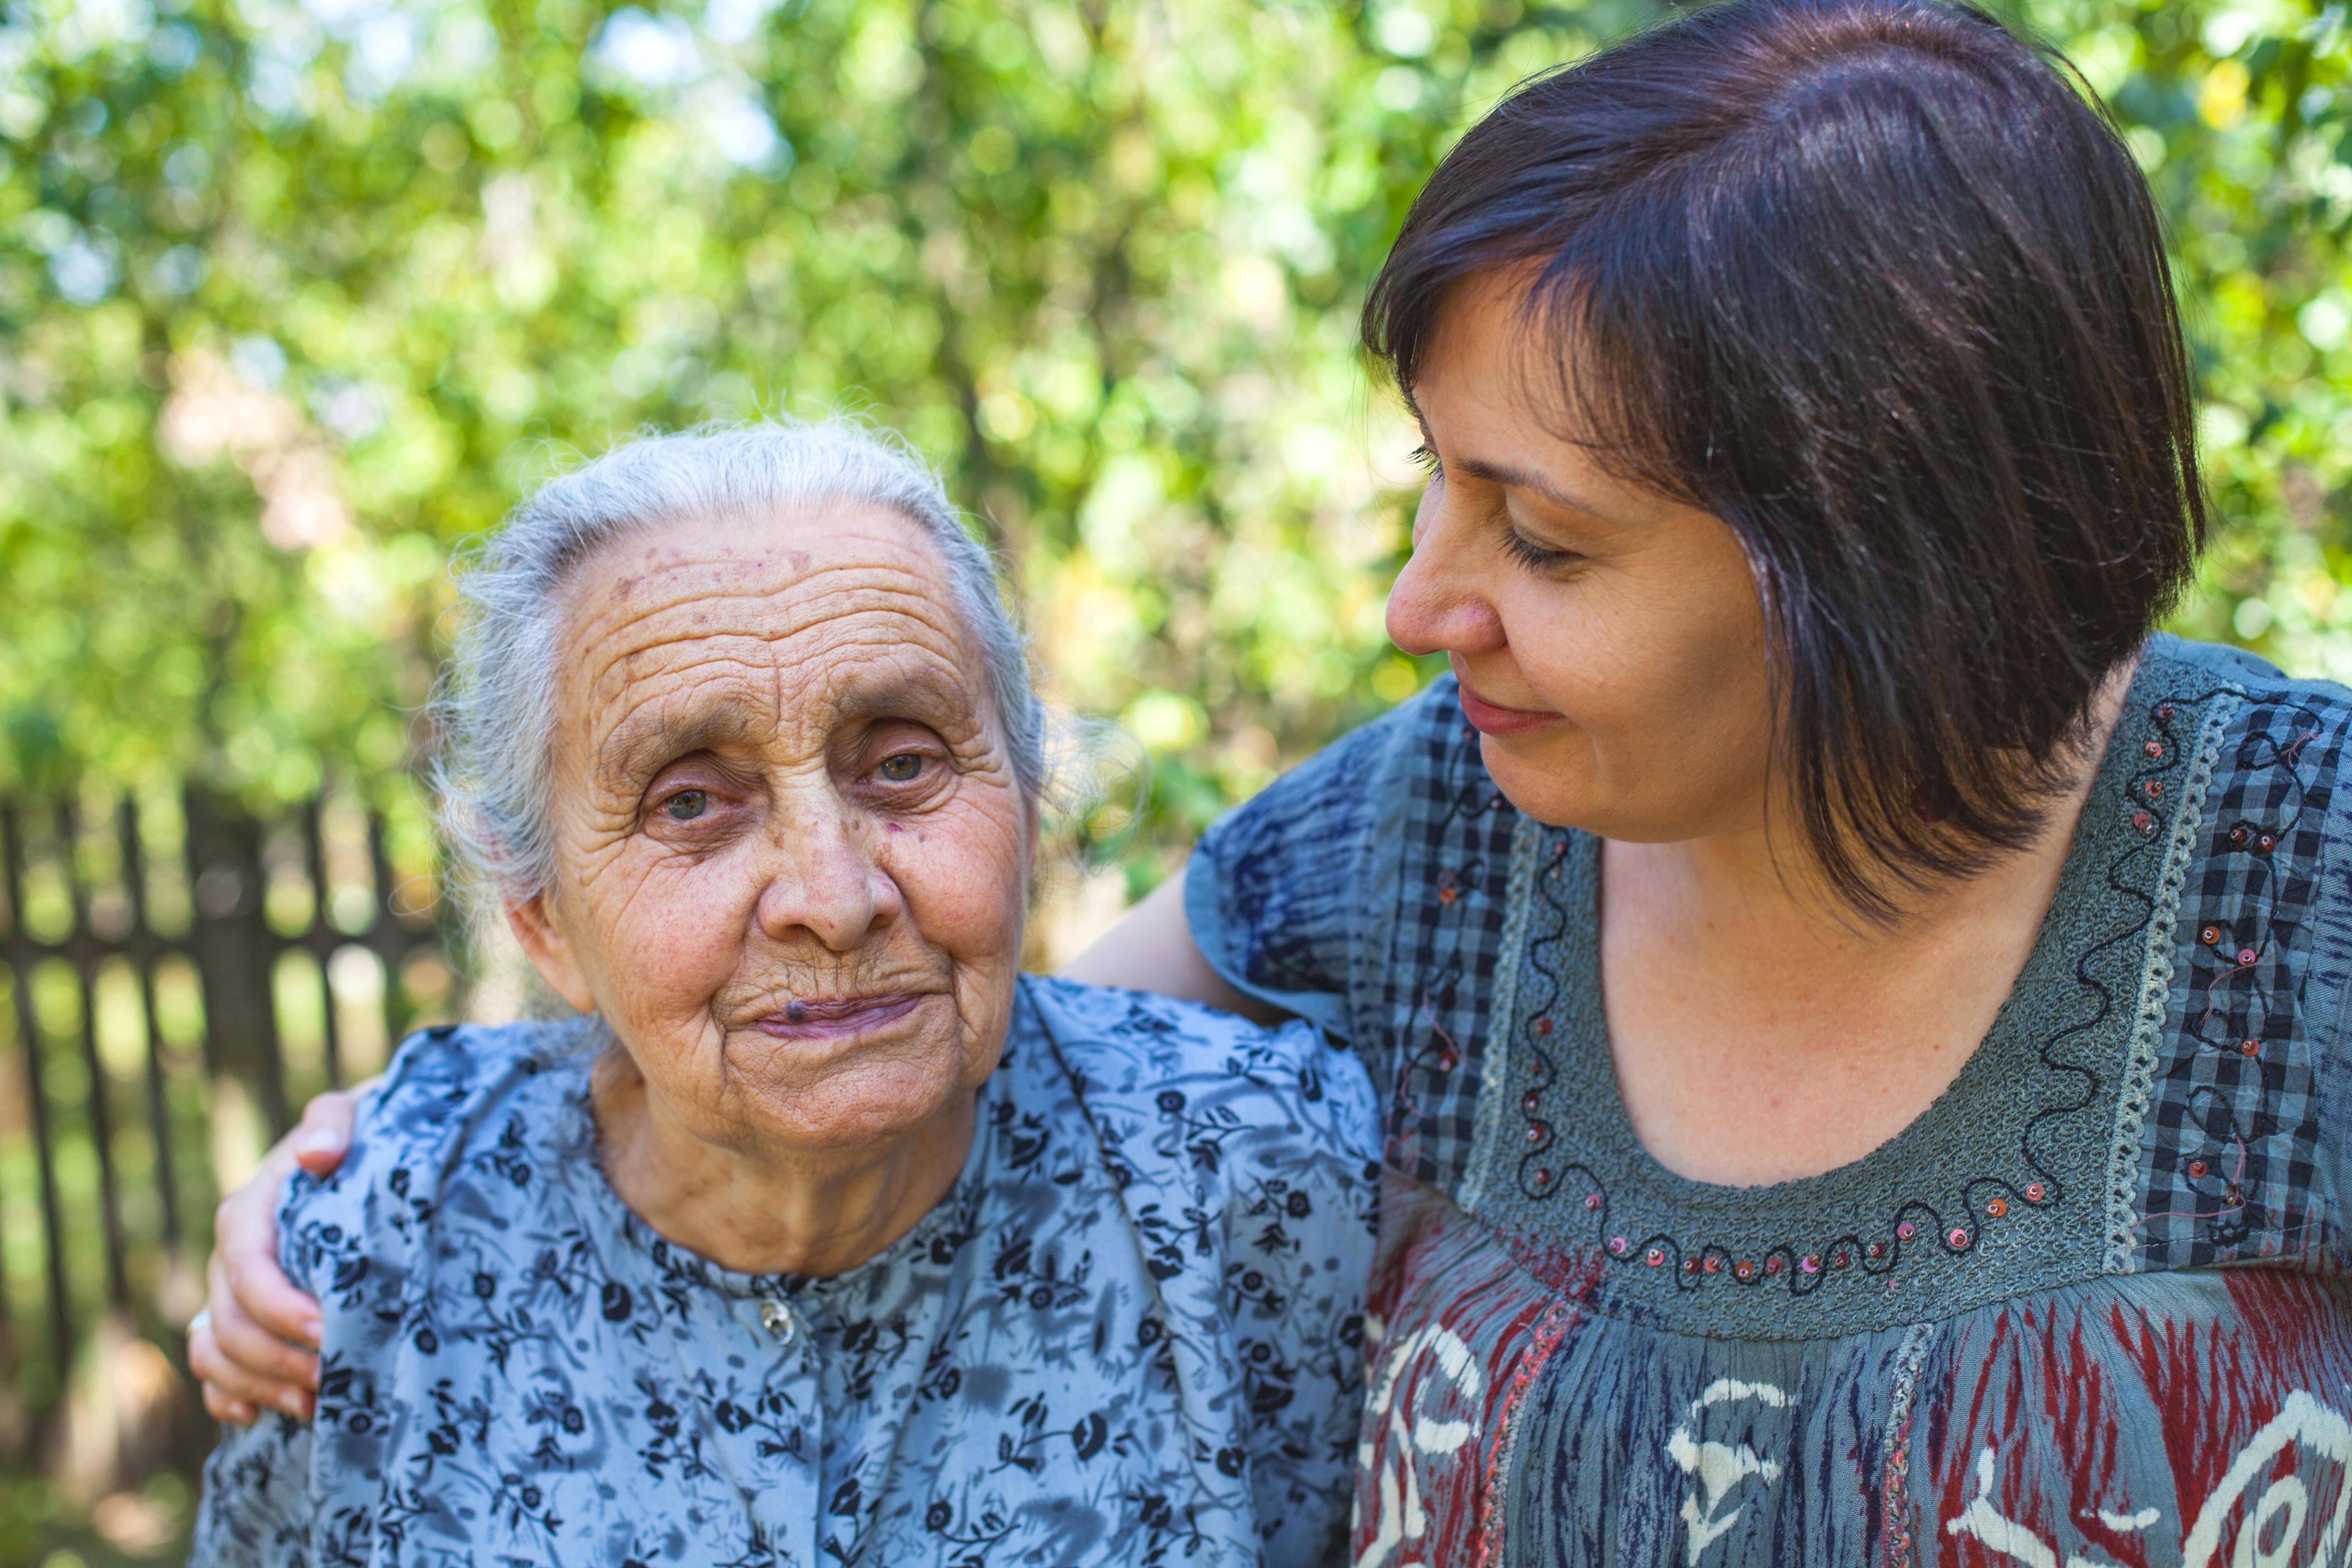 Seniors urged to figure out financial and caregiver decisions before it's too late